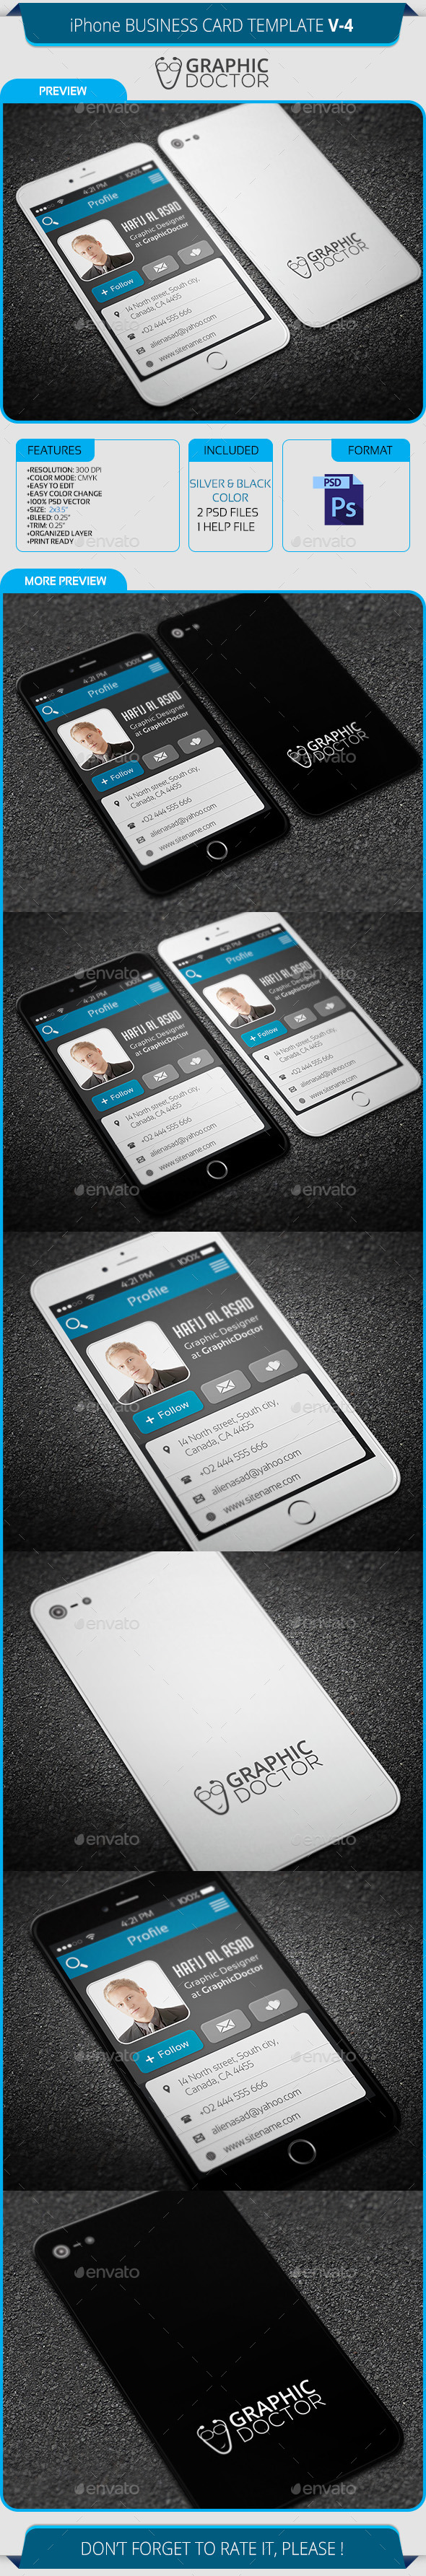 Iphone business card template v 4 by graphicdoctor graphicriver iphone business card template v 4 real objects business cards wajeb Gallery